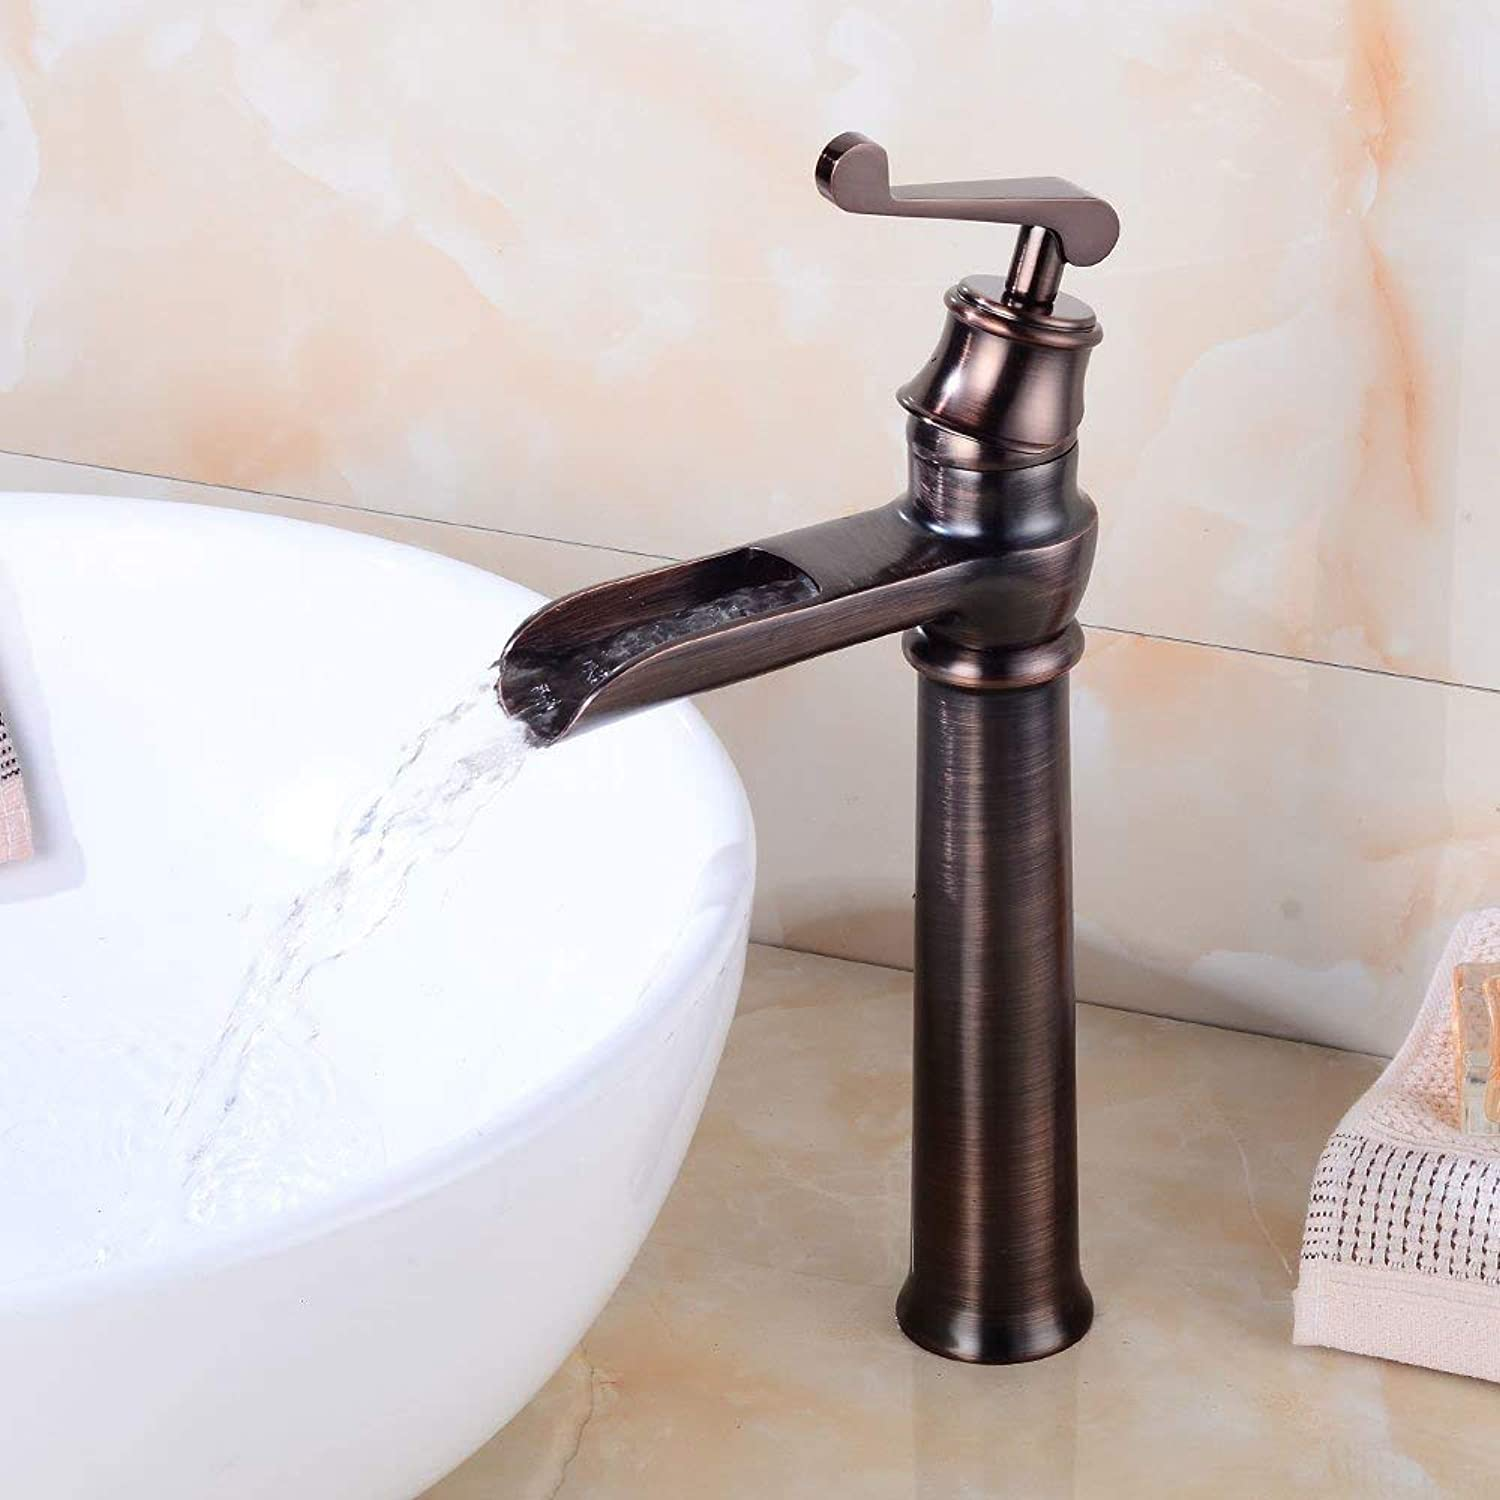 Antique waterfall, water faucet, European bathroom, single hole wash basin faucet, cold and hot mixed faucet, single black faucet